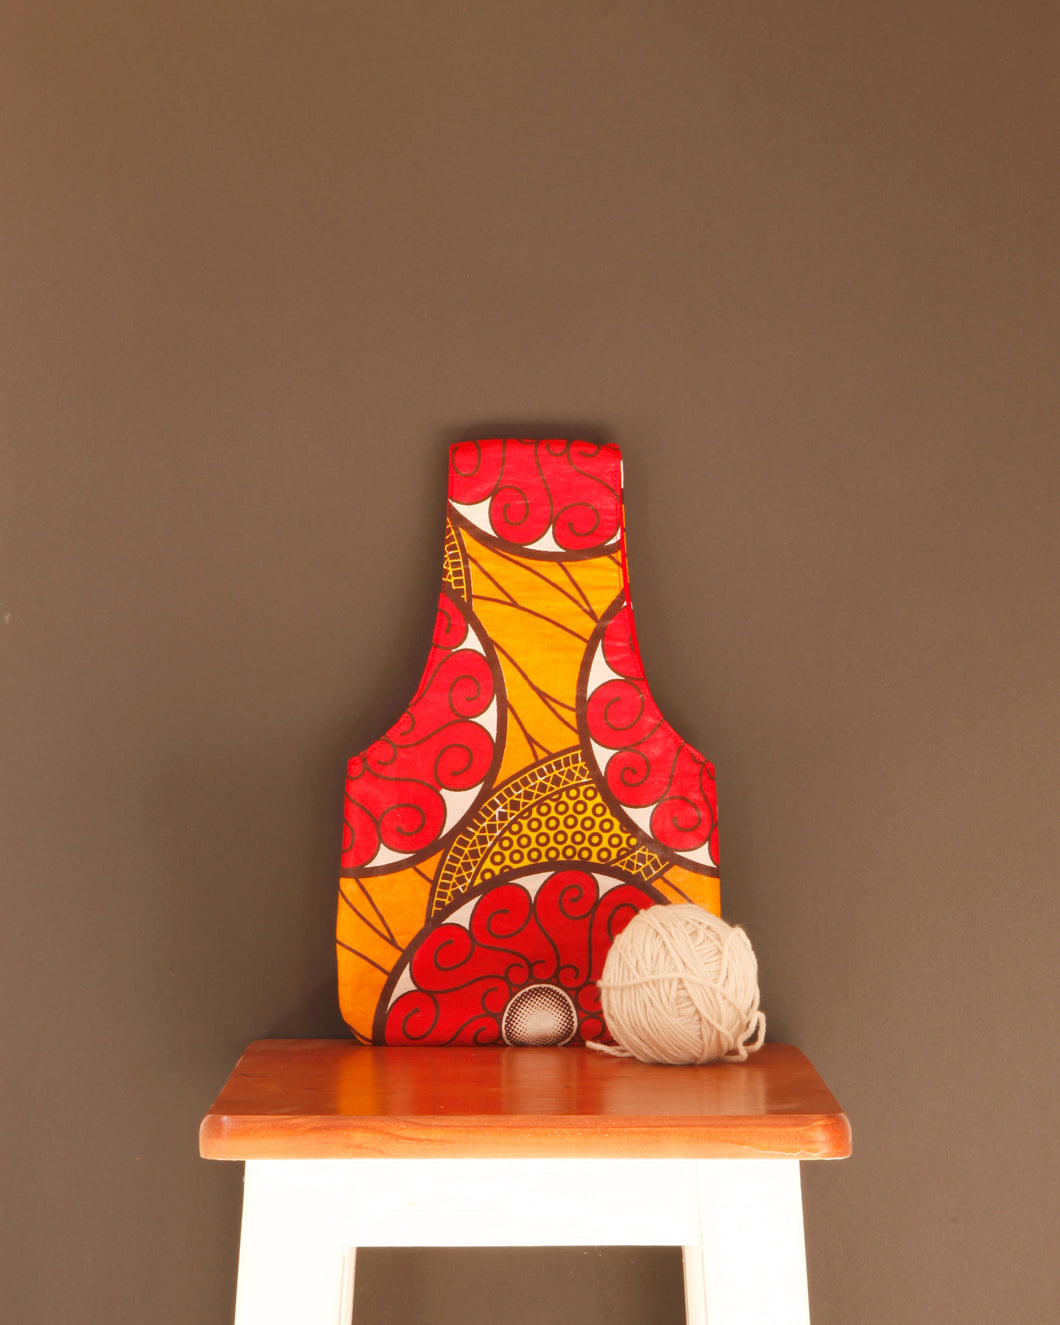 Small knitting bag for makers with a colorful, red waxed cotton print exterior.  Handmade in Africa by Chameleon Goods.